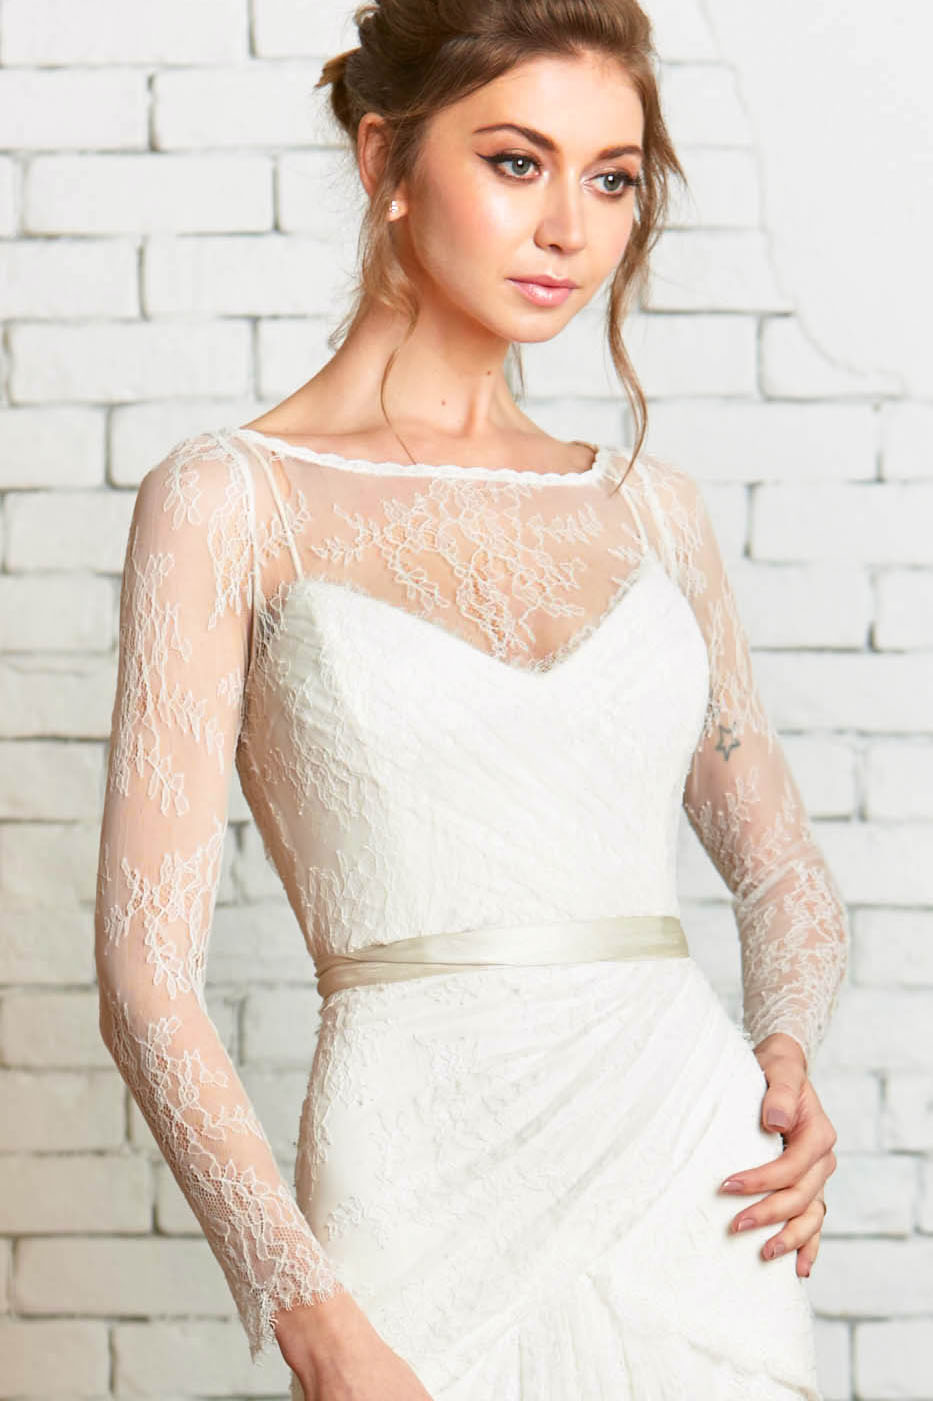 BrookeTop-1-Front_Long_Sleeve_Lace_Wedding_Topper_Scoop_Neck.jpg